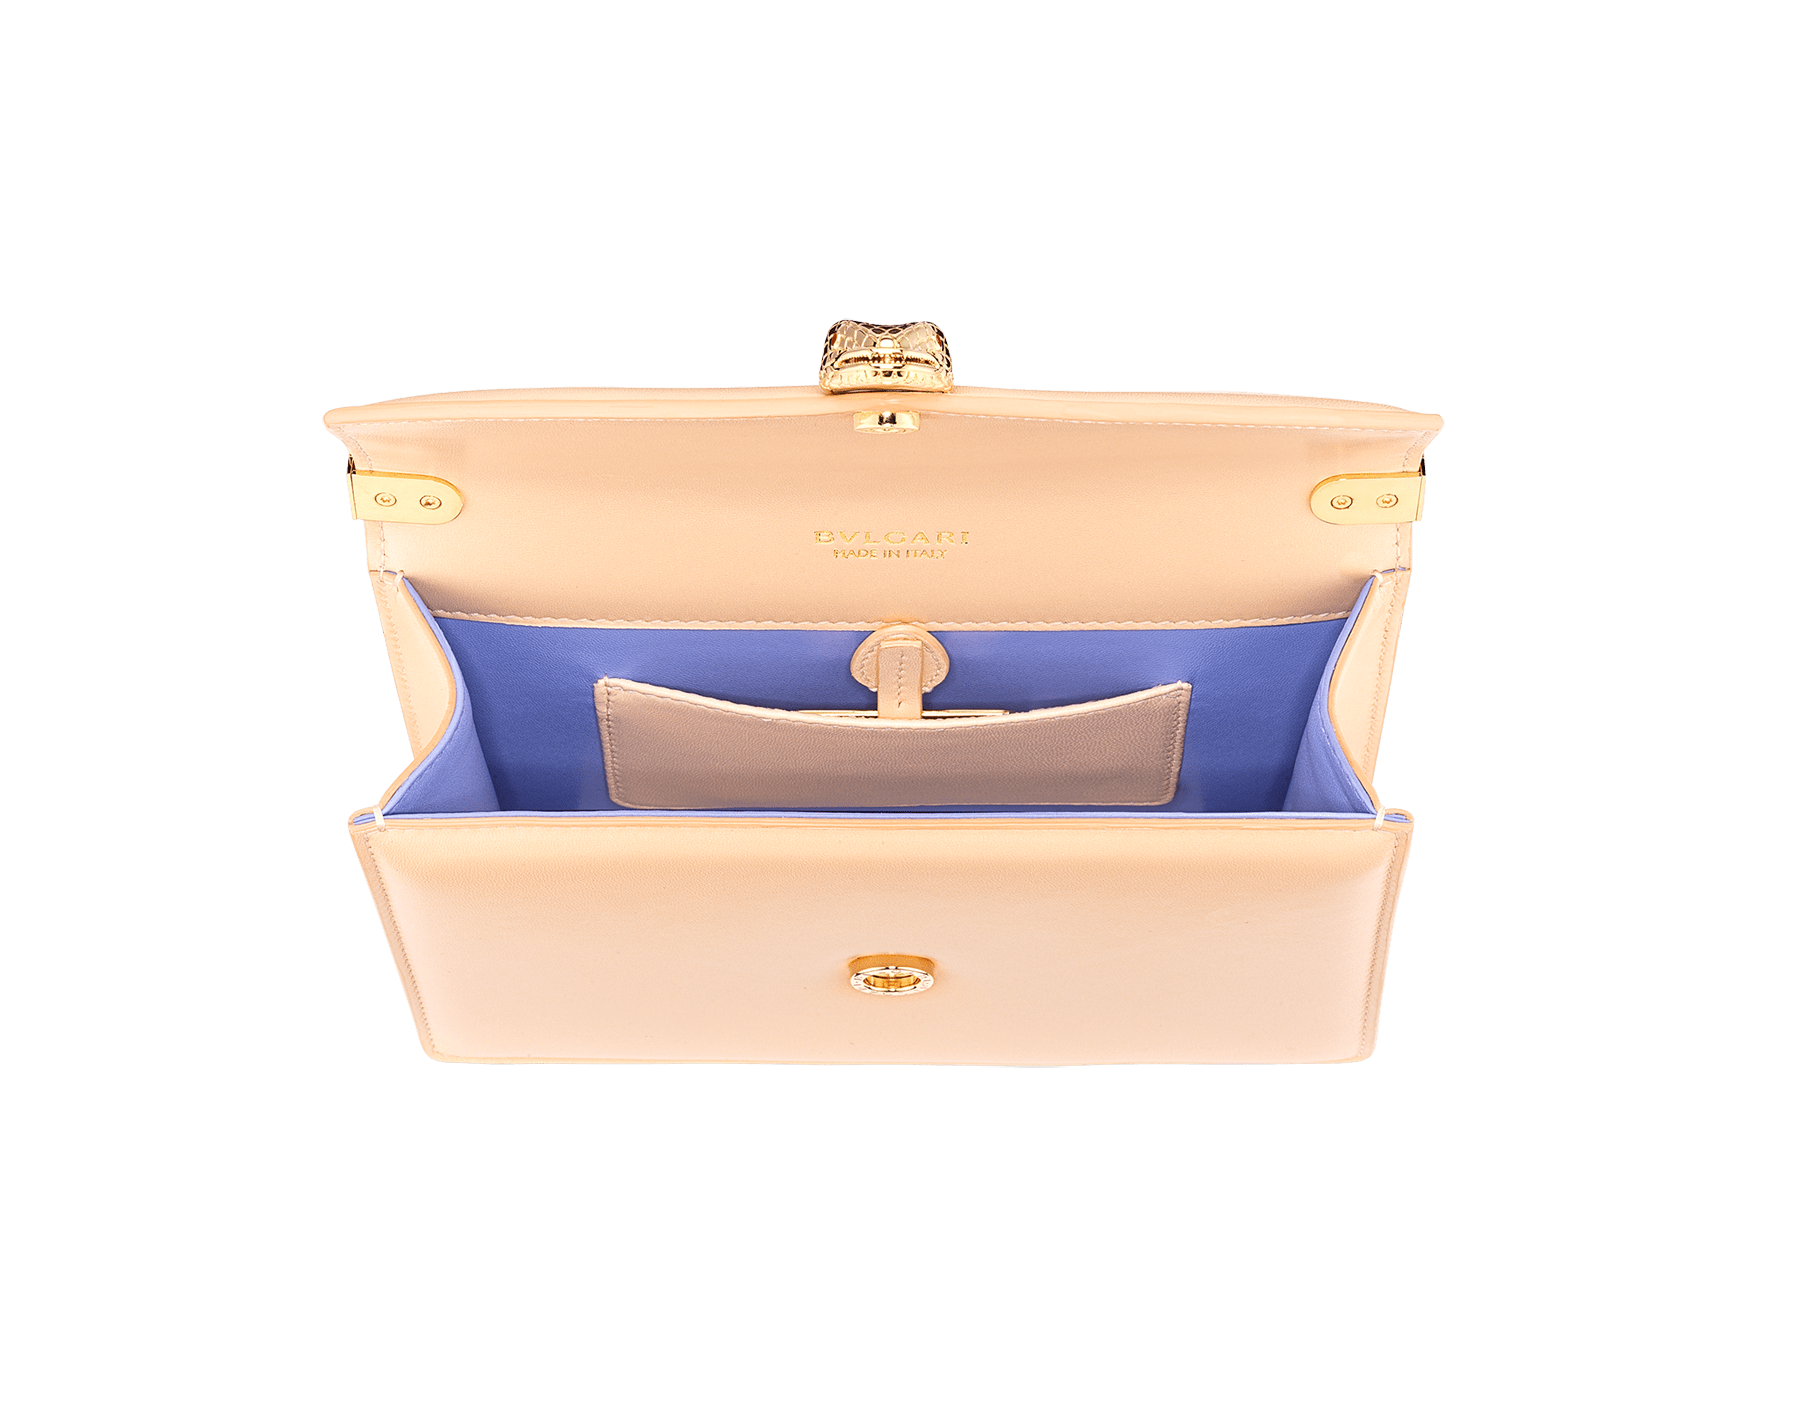 """Serpenti Forever"" multichain shoulder bag in peach ""Papier"" nappa leather, with Lavender Amethyst lilac nappa leather inner lining. New Serpenti head closure in gold-plated brass, finished with red enamel eyes. 1107-NP image 4"